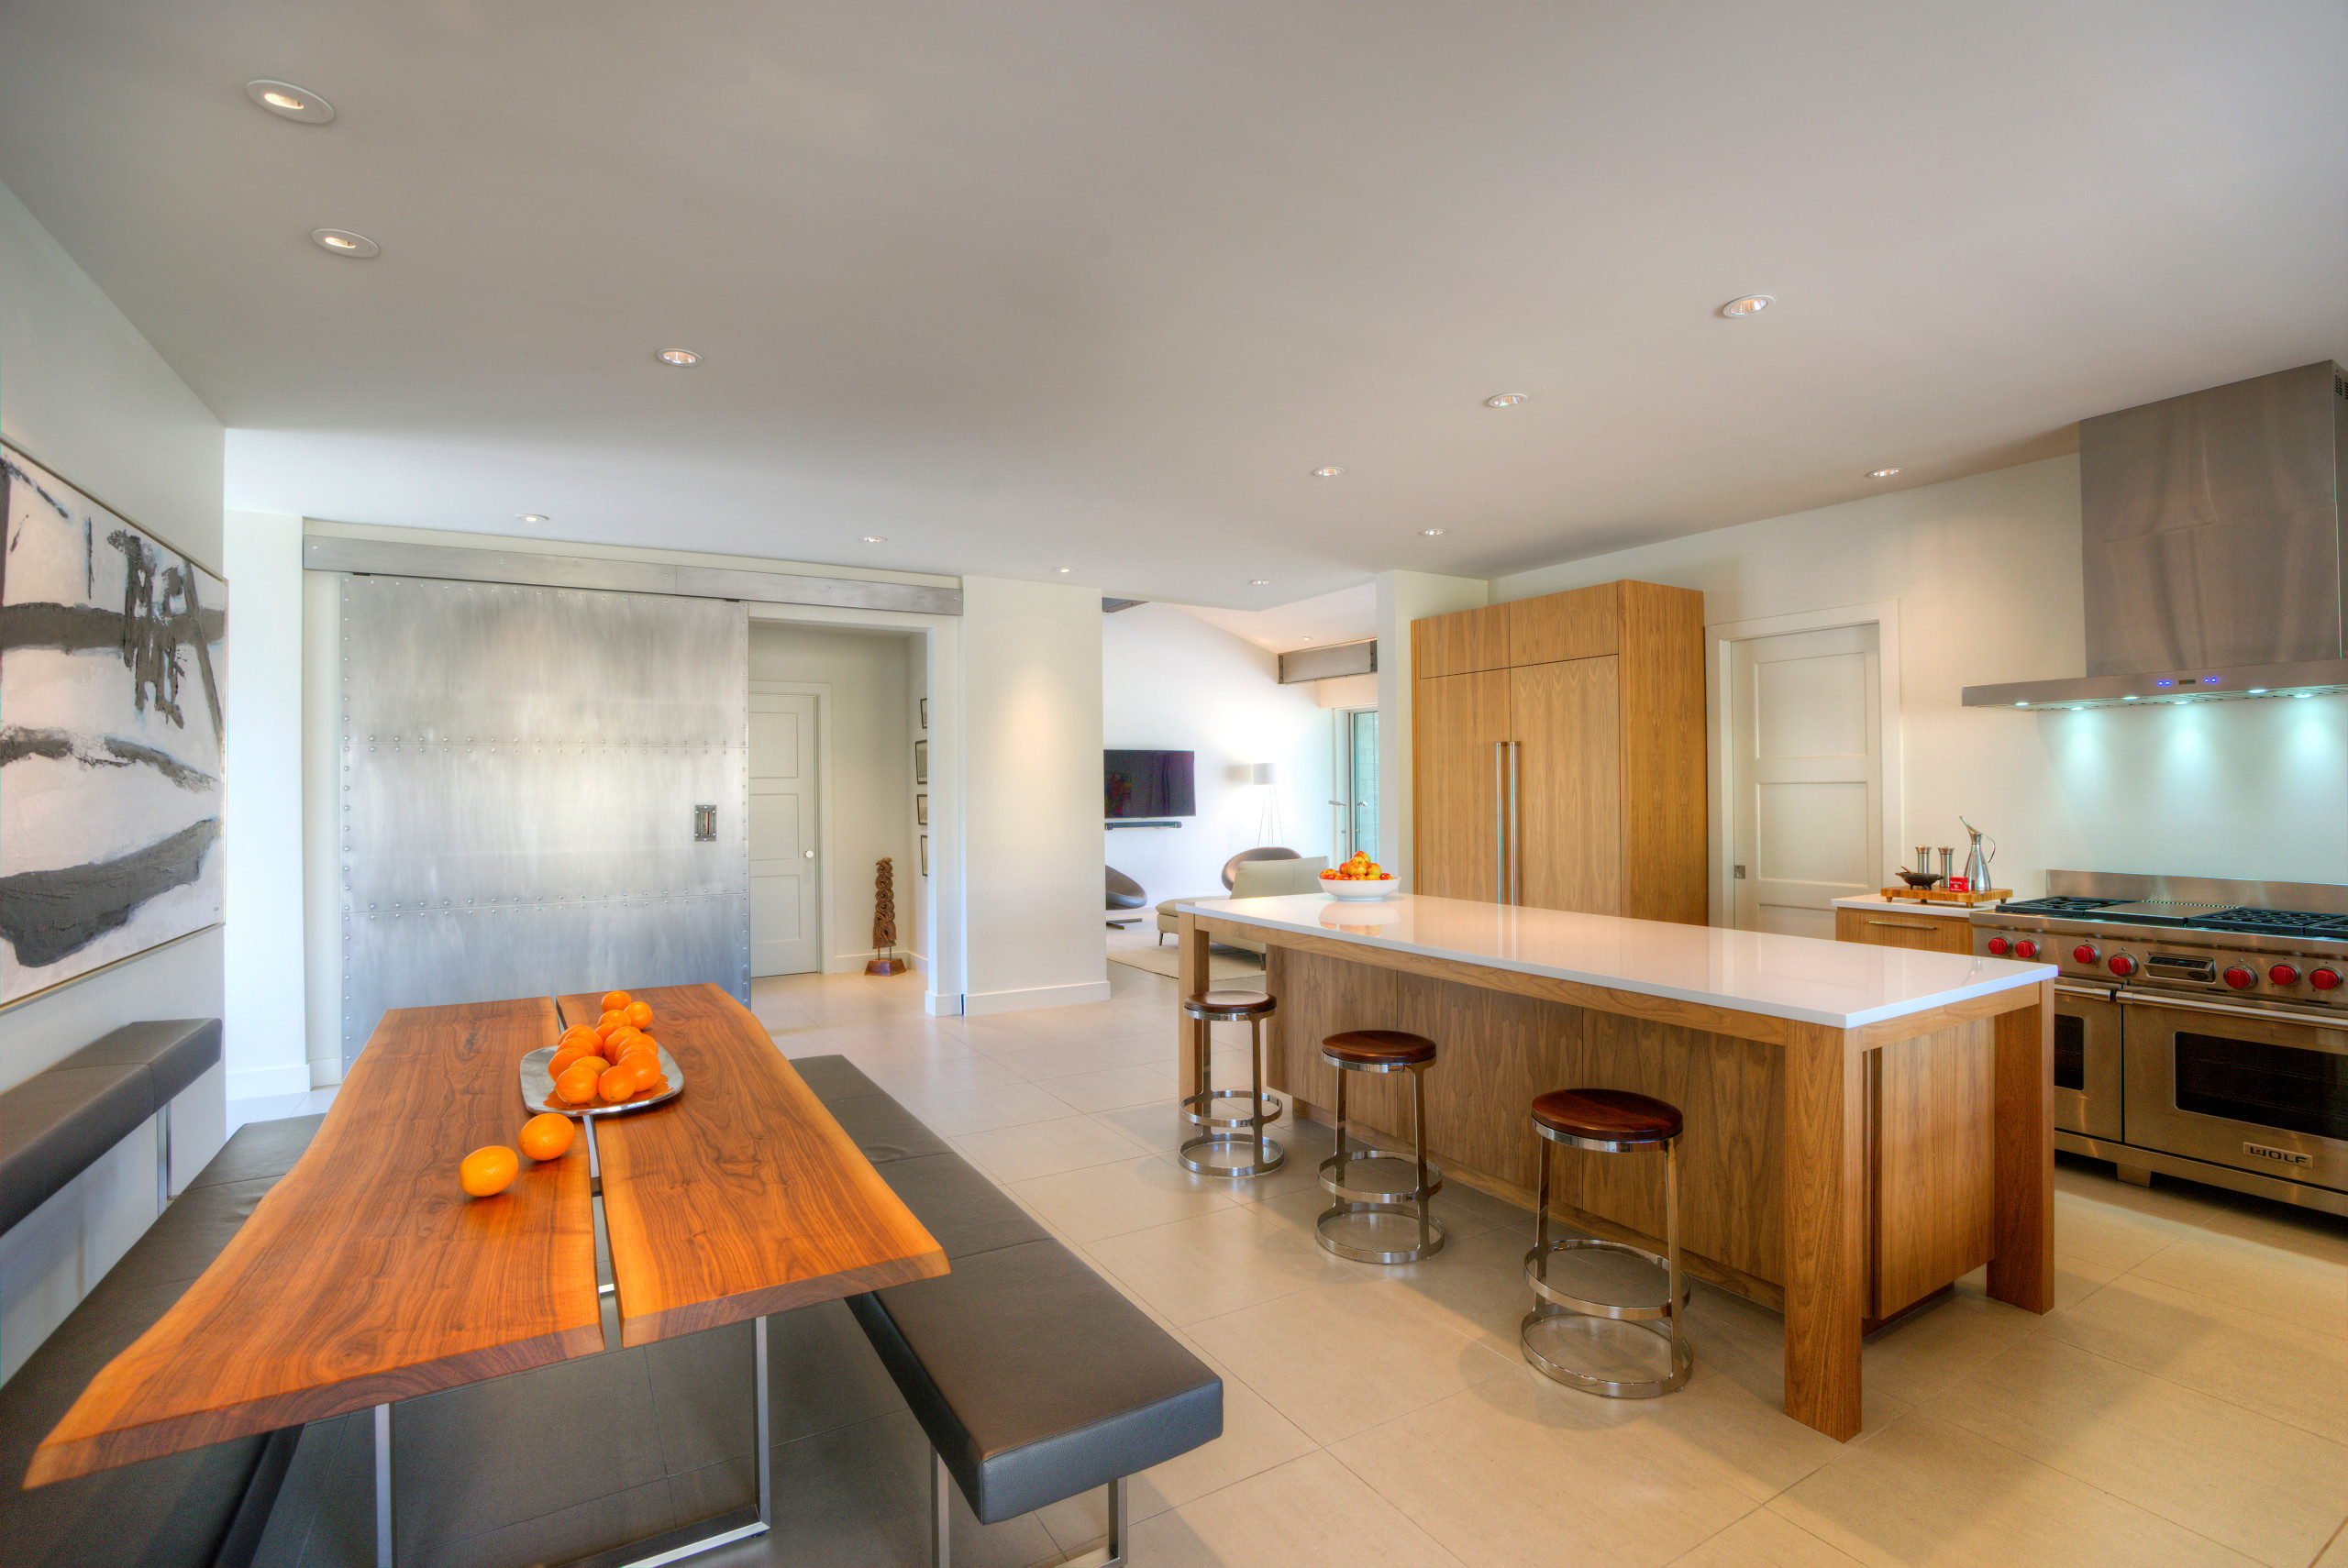 2016 SECOND PLACE WINNER - ASID - RESIDENTIAL & FIXTURE